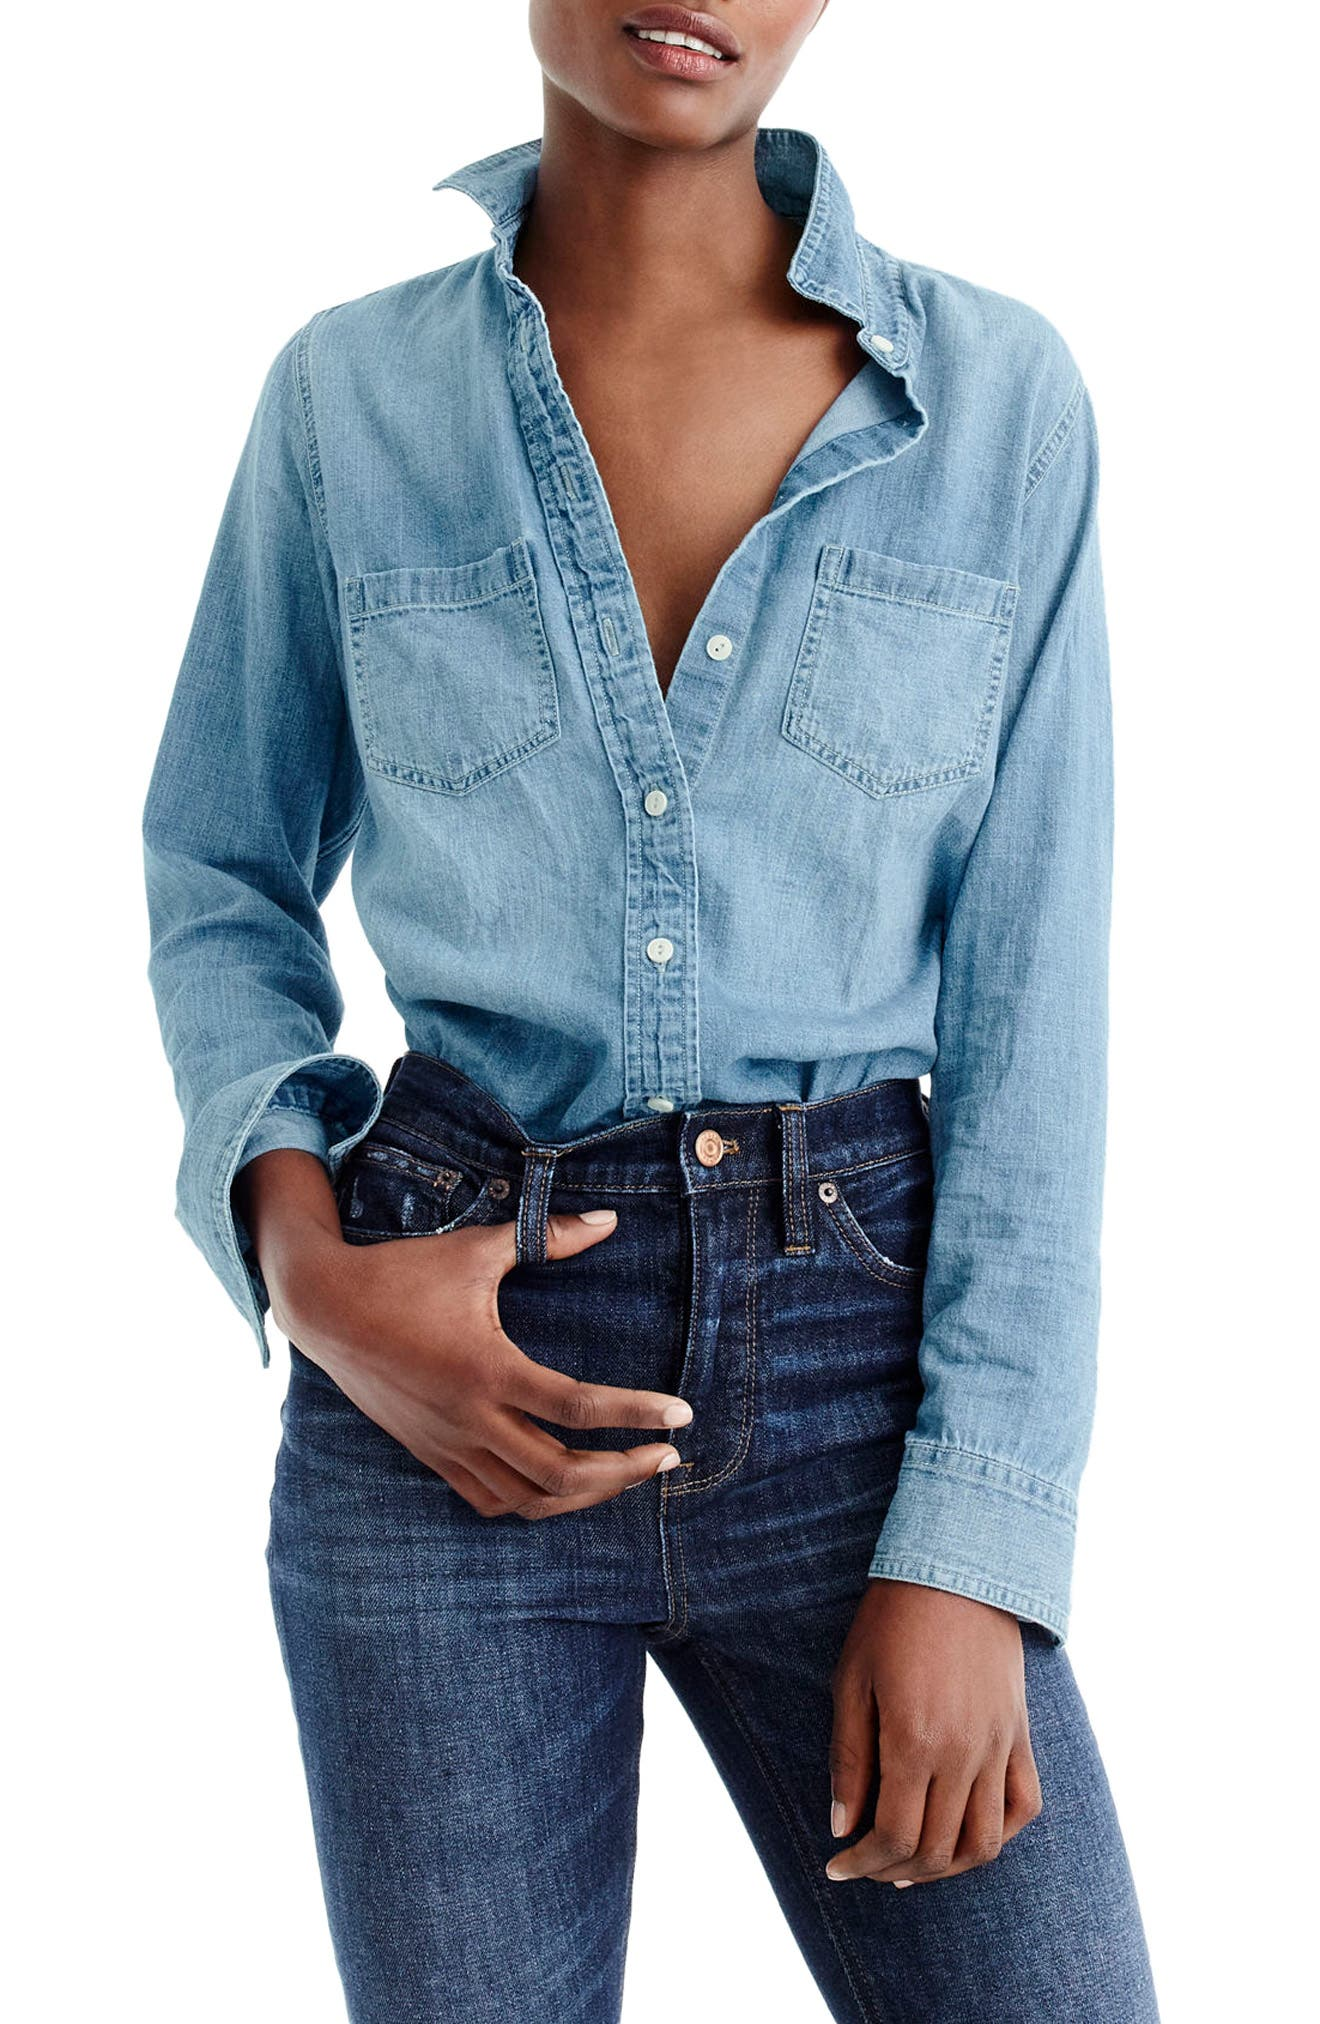 Alternate Image 1 Selected - J.Crew Everyday Chambray Shirt (Regular & Petite)